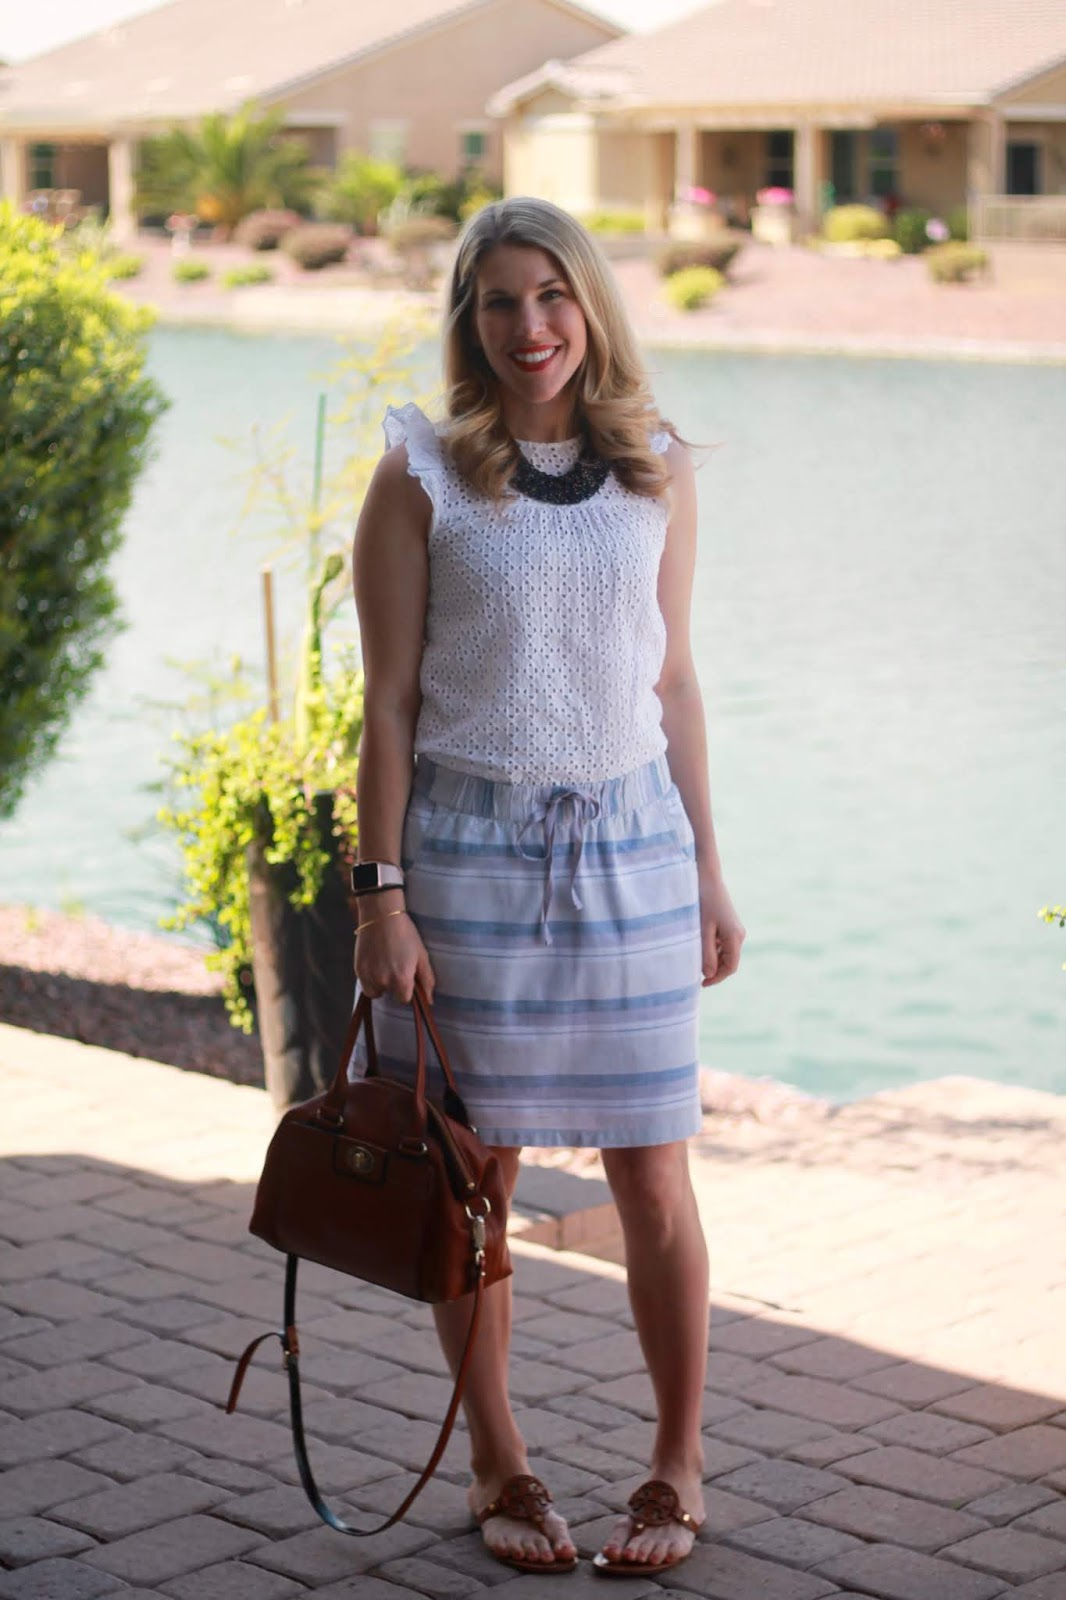 white eyelet blouse, aventura grey and blue striped skirt, tory burch miller sandals, cognac crossbody bag